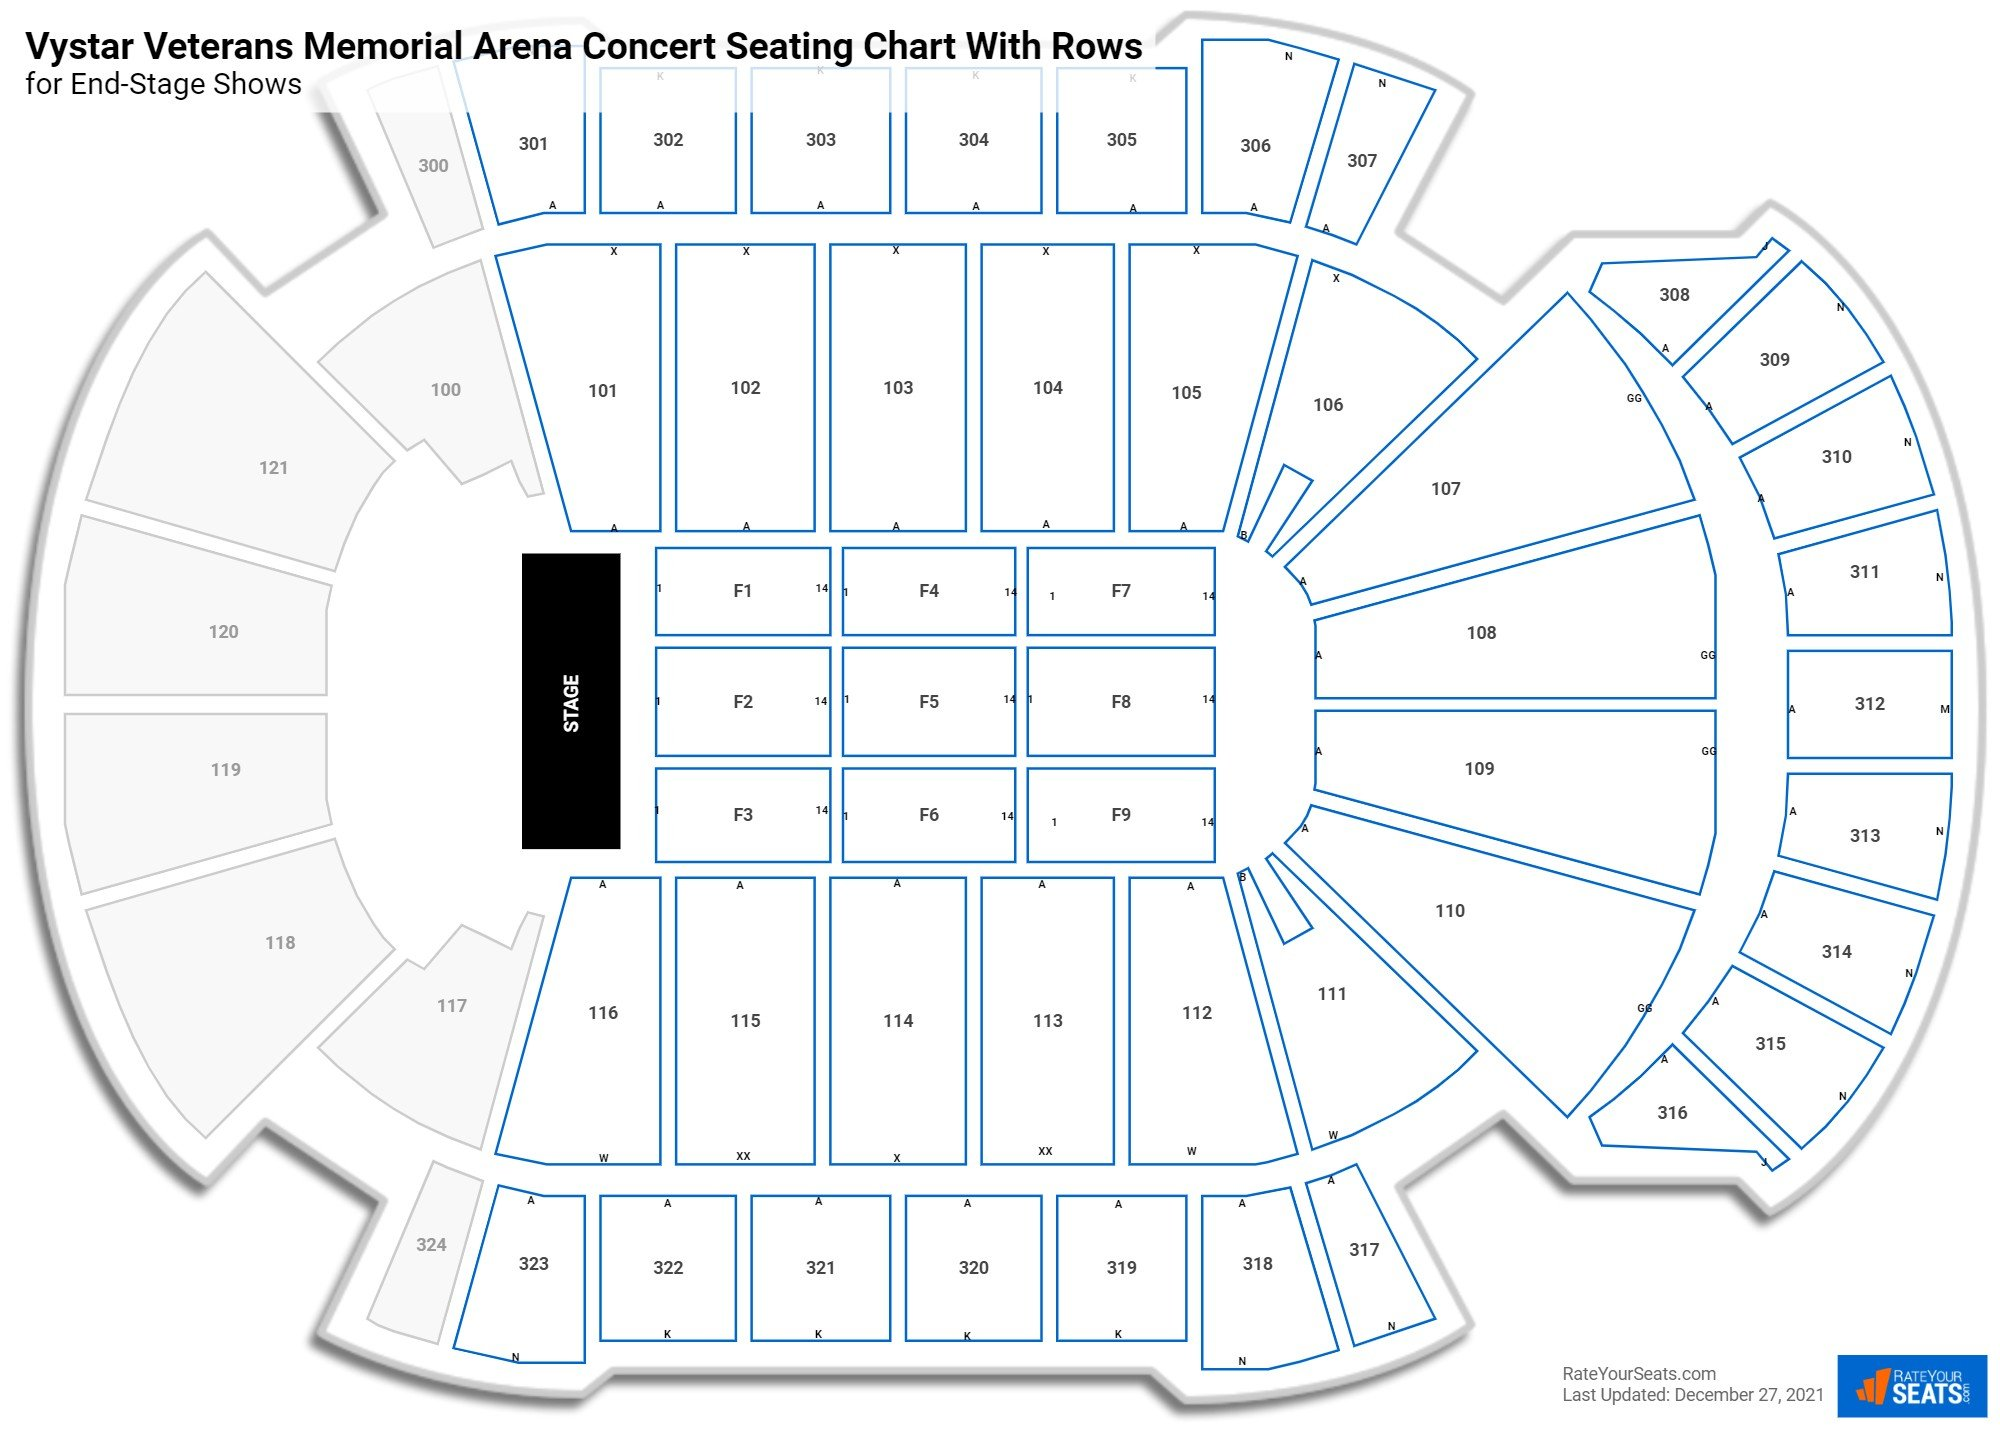 Vystar Veterans Memorial Arena seating chart with rows concert